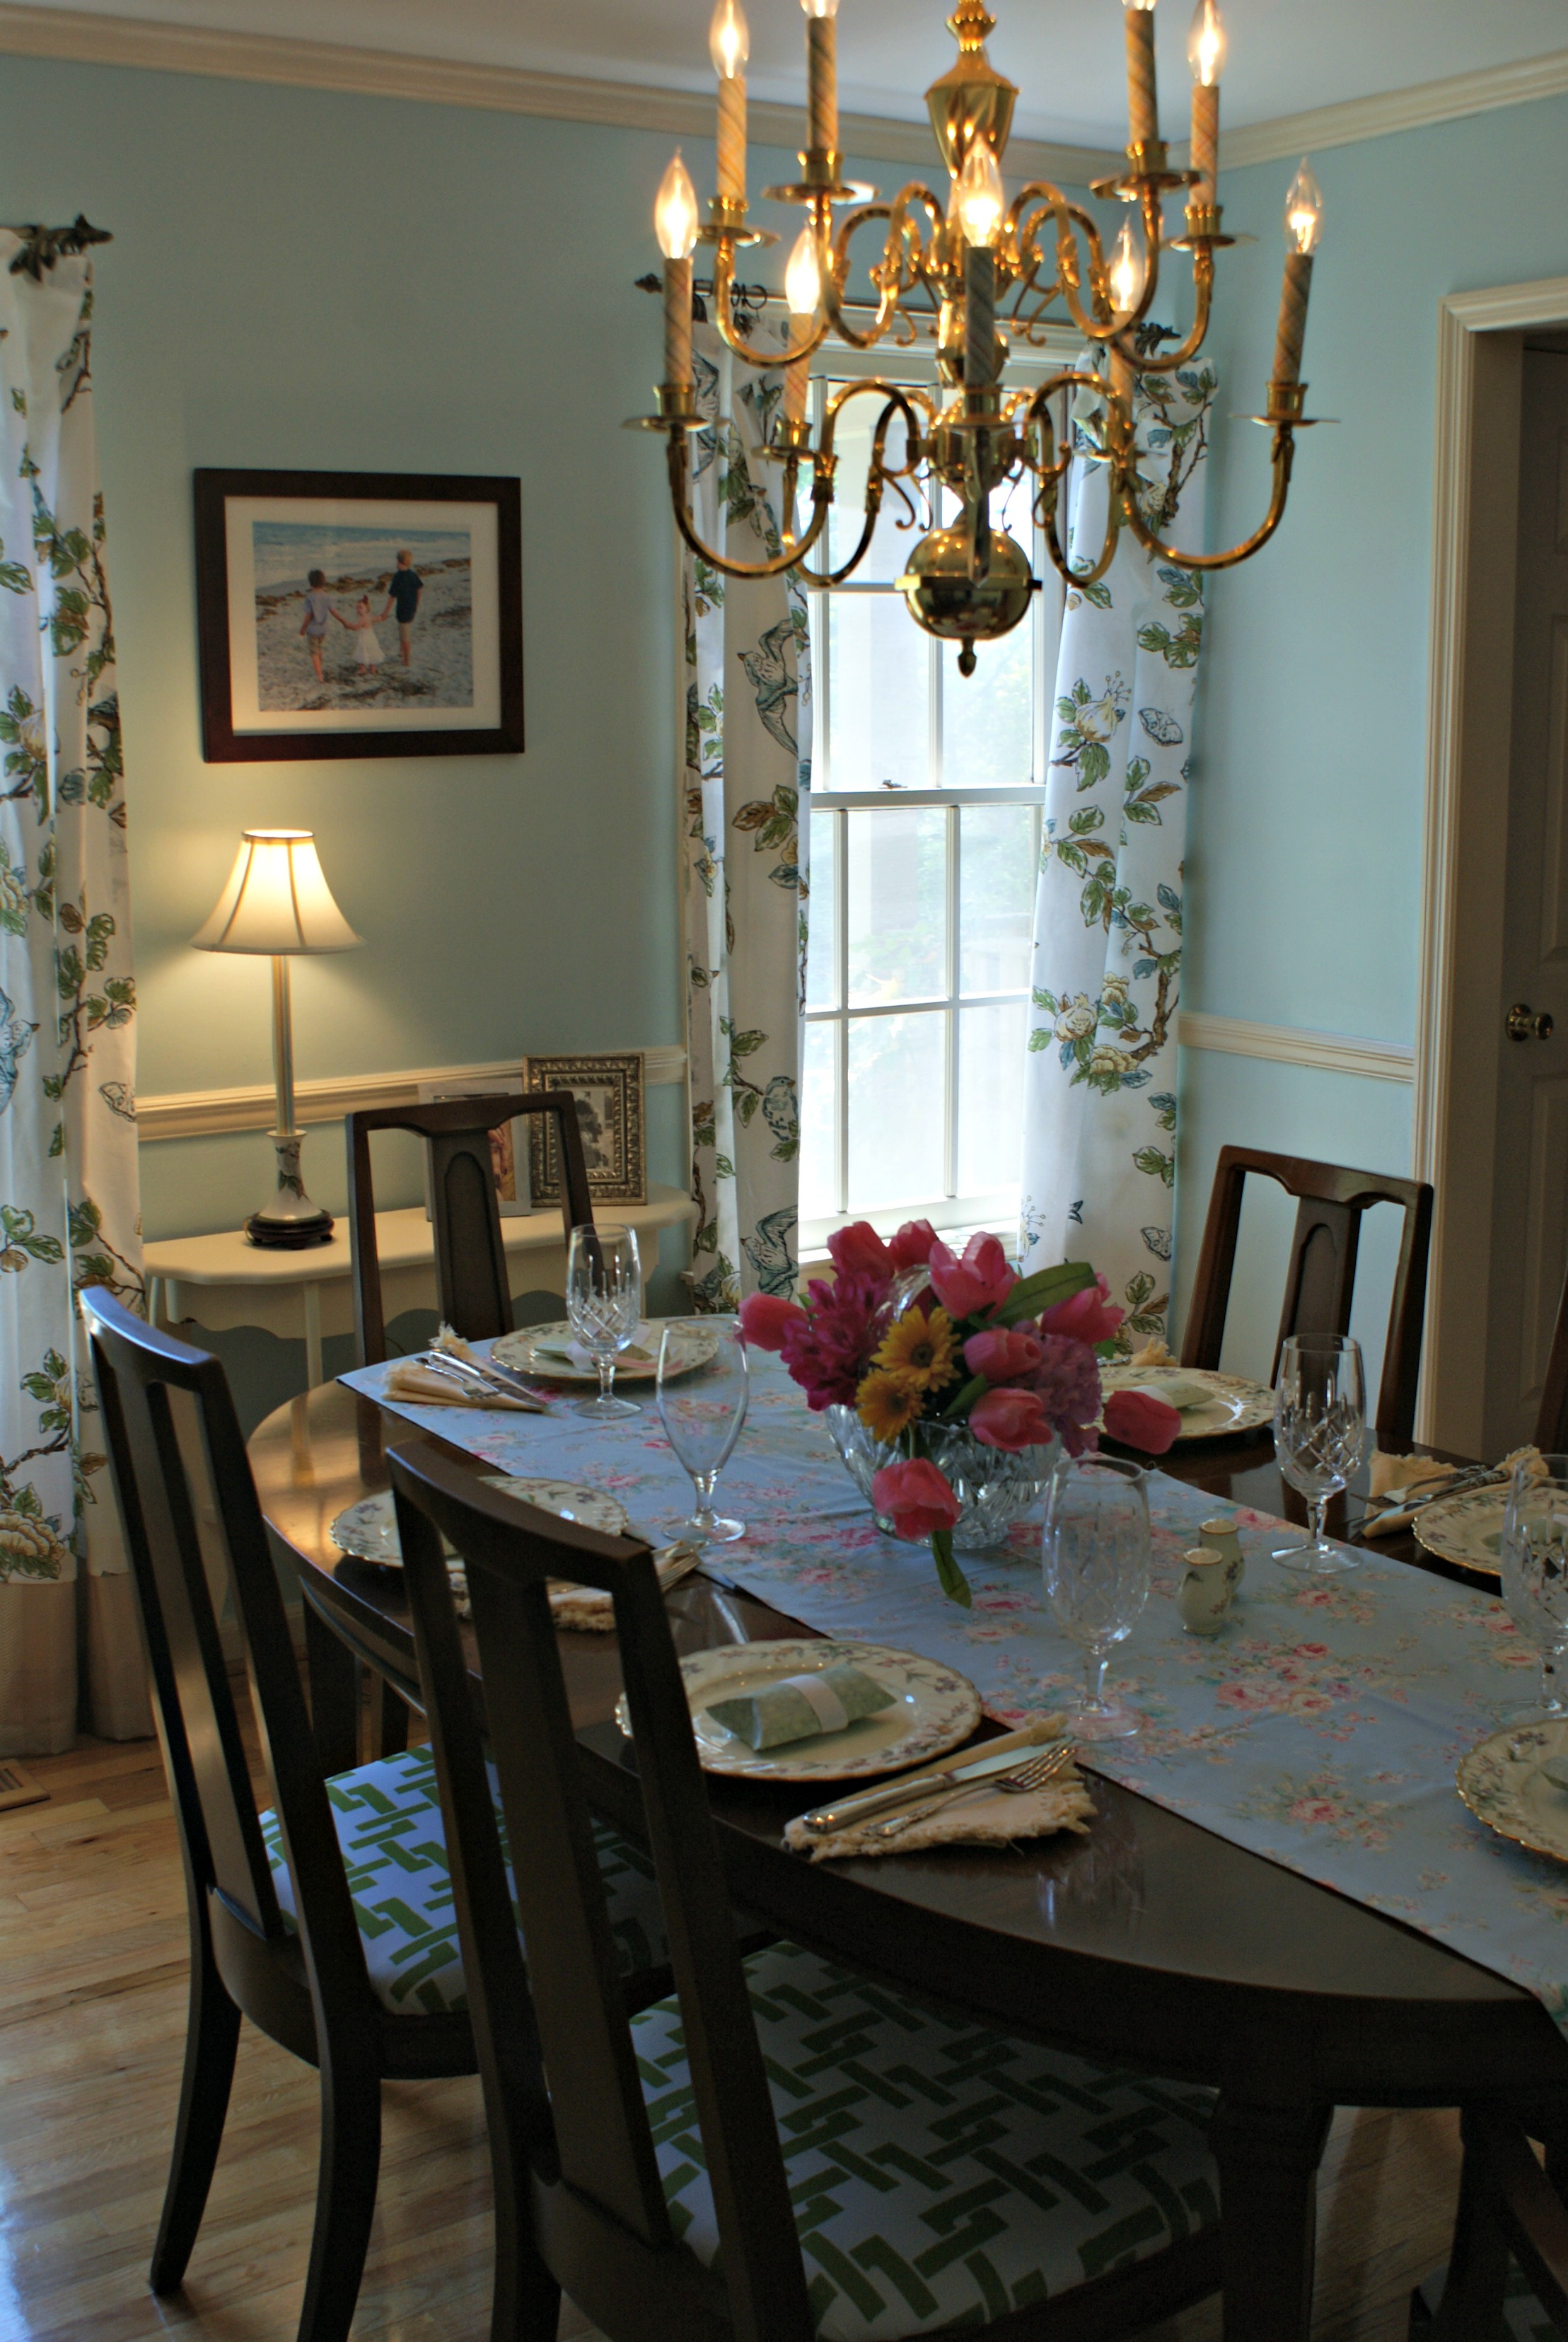 a dining room makeover on a budget dining room makeover by 3 little greenwoods 3littlegreenwoods